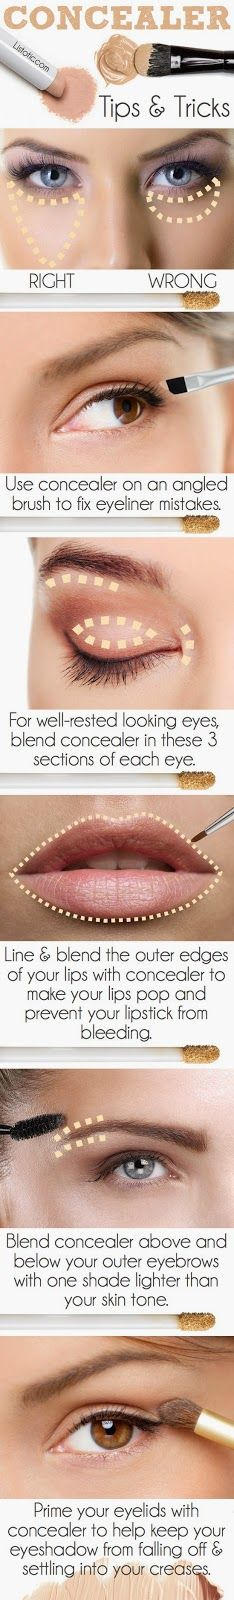 Knowing How To Use Your Concealer